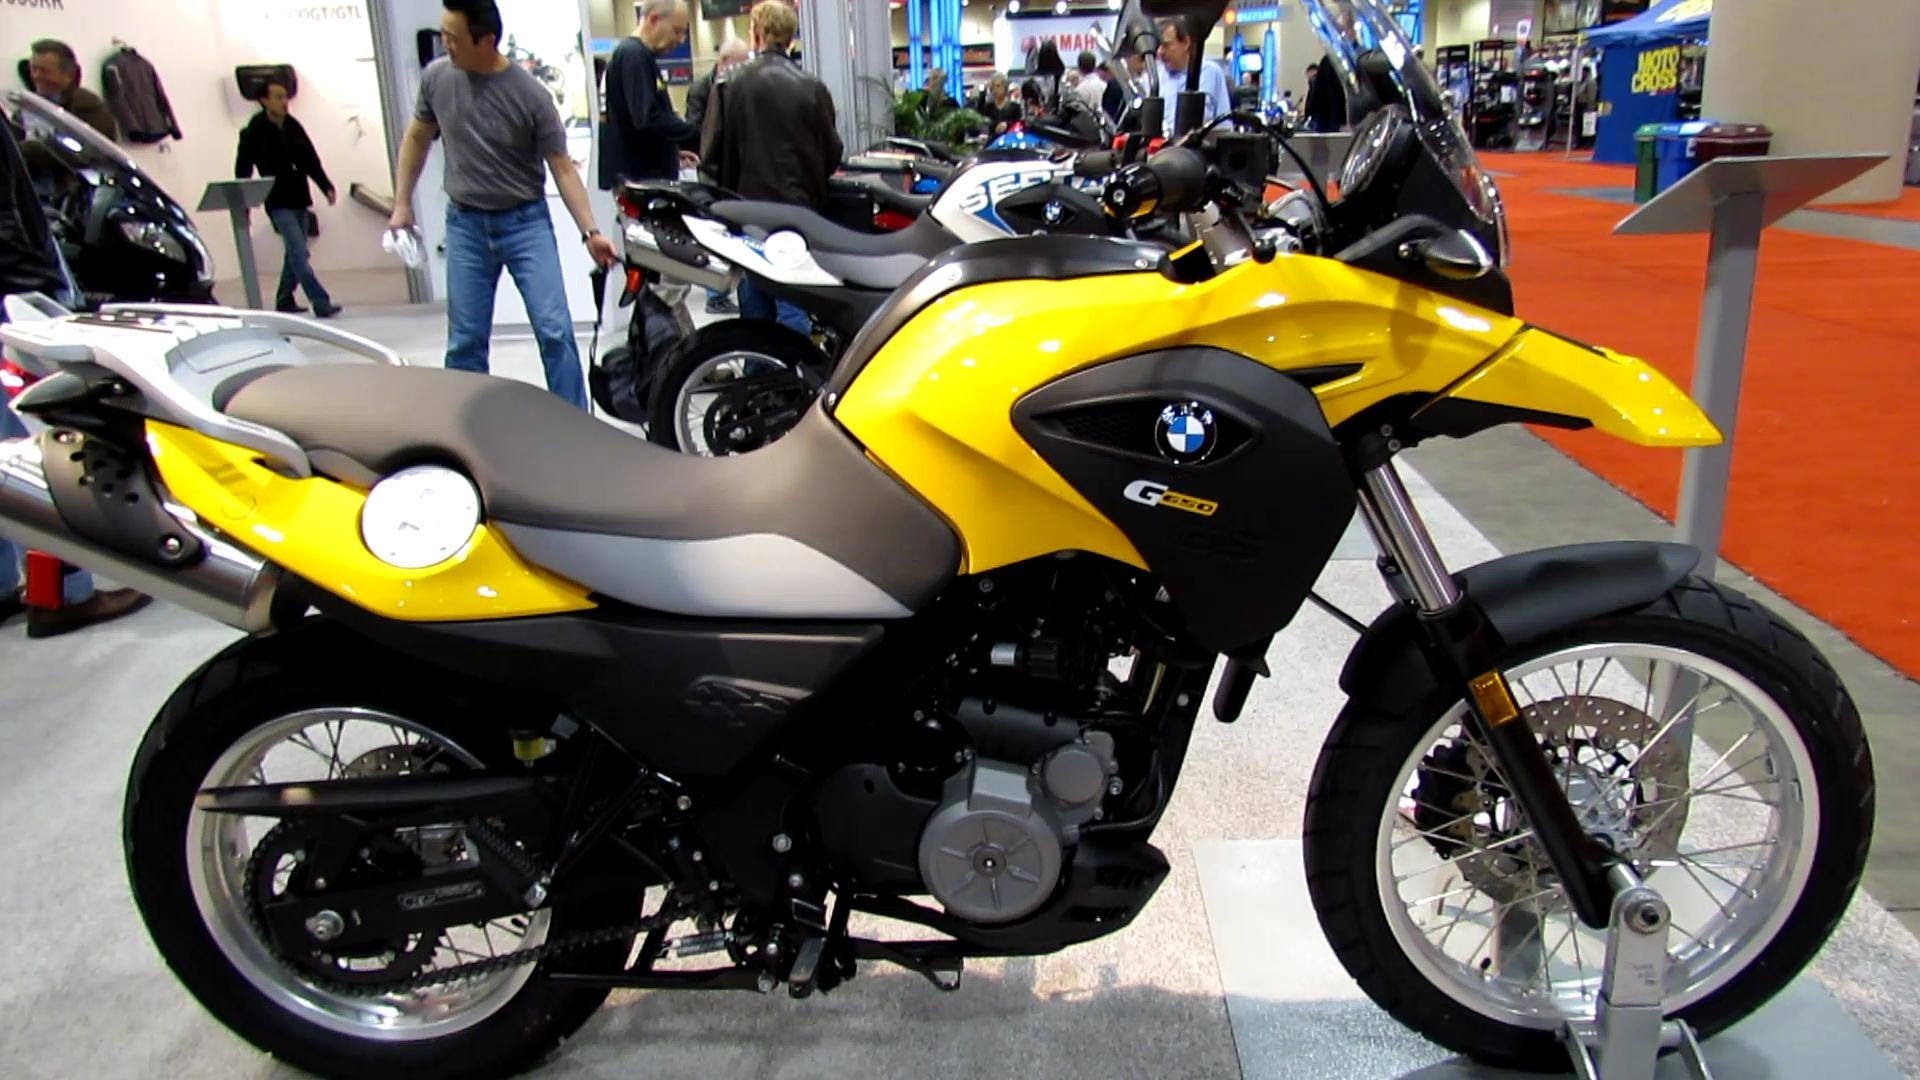 BMW G 650 GS images #150067